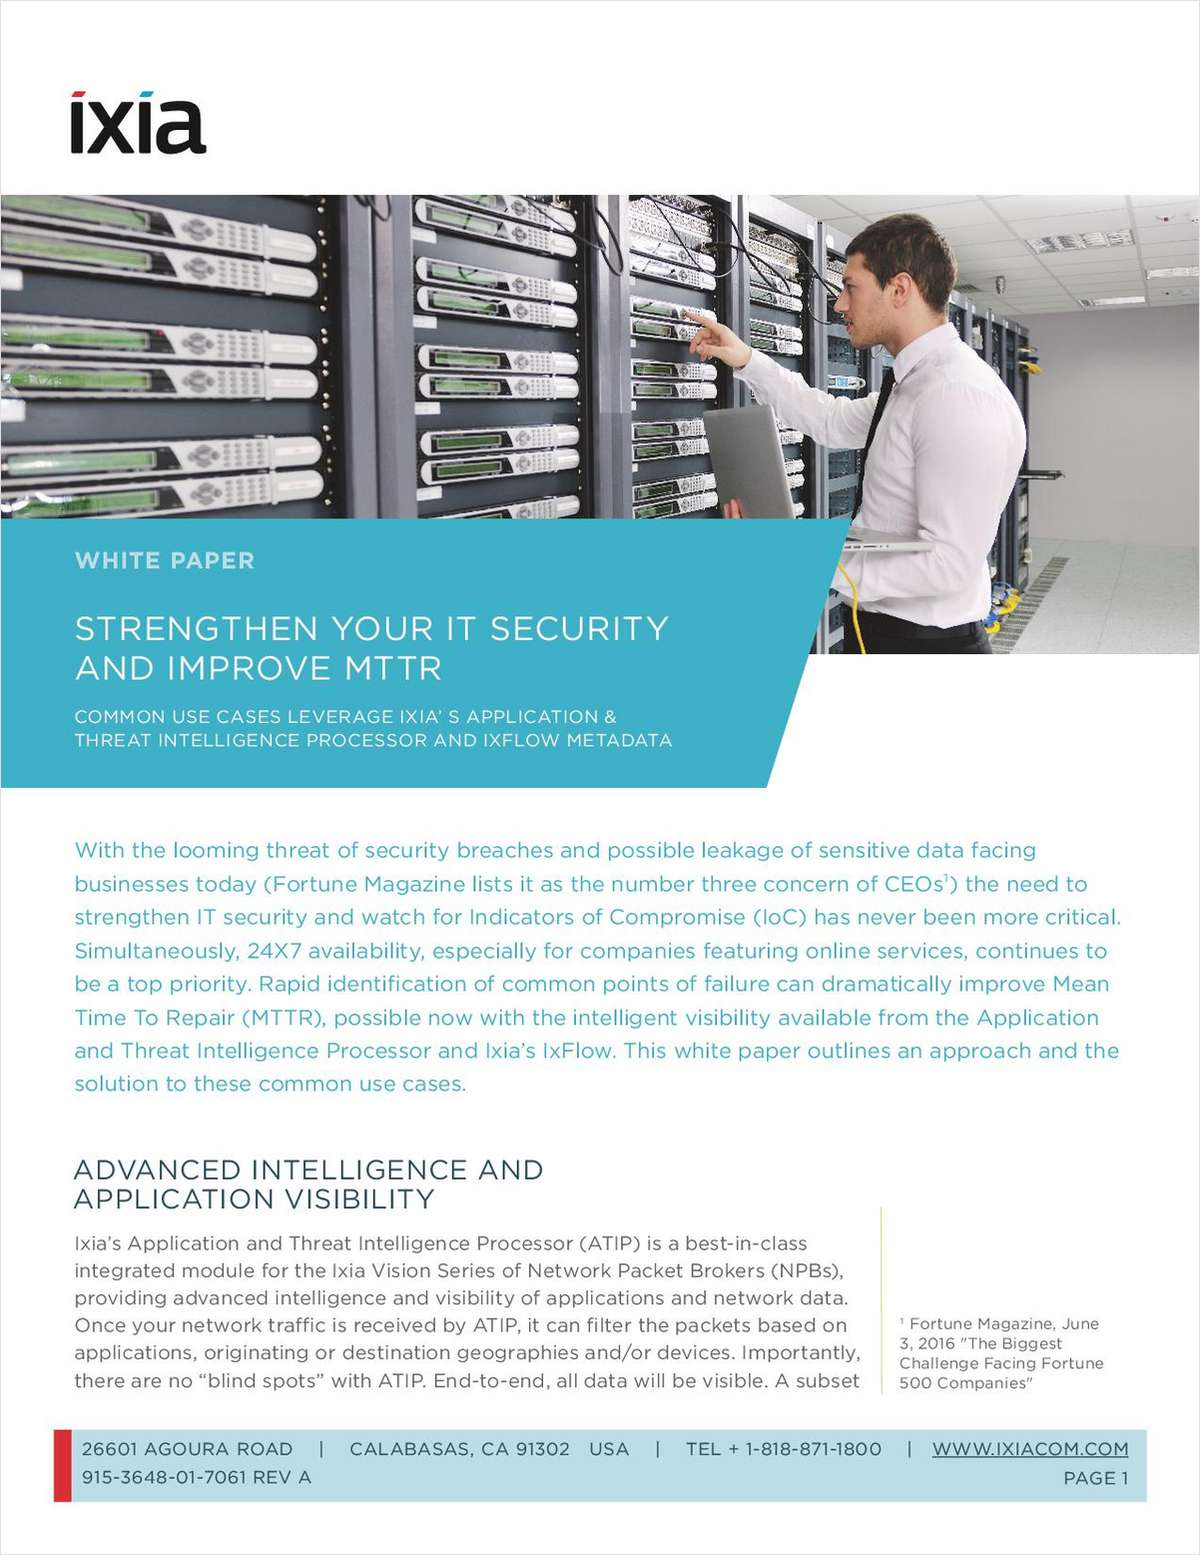 Strengthen your IT Security and Improve MTTR